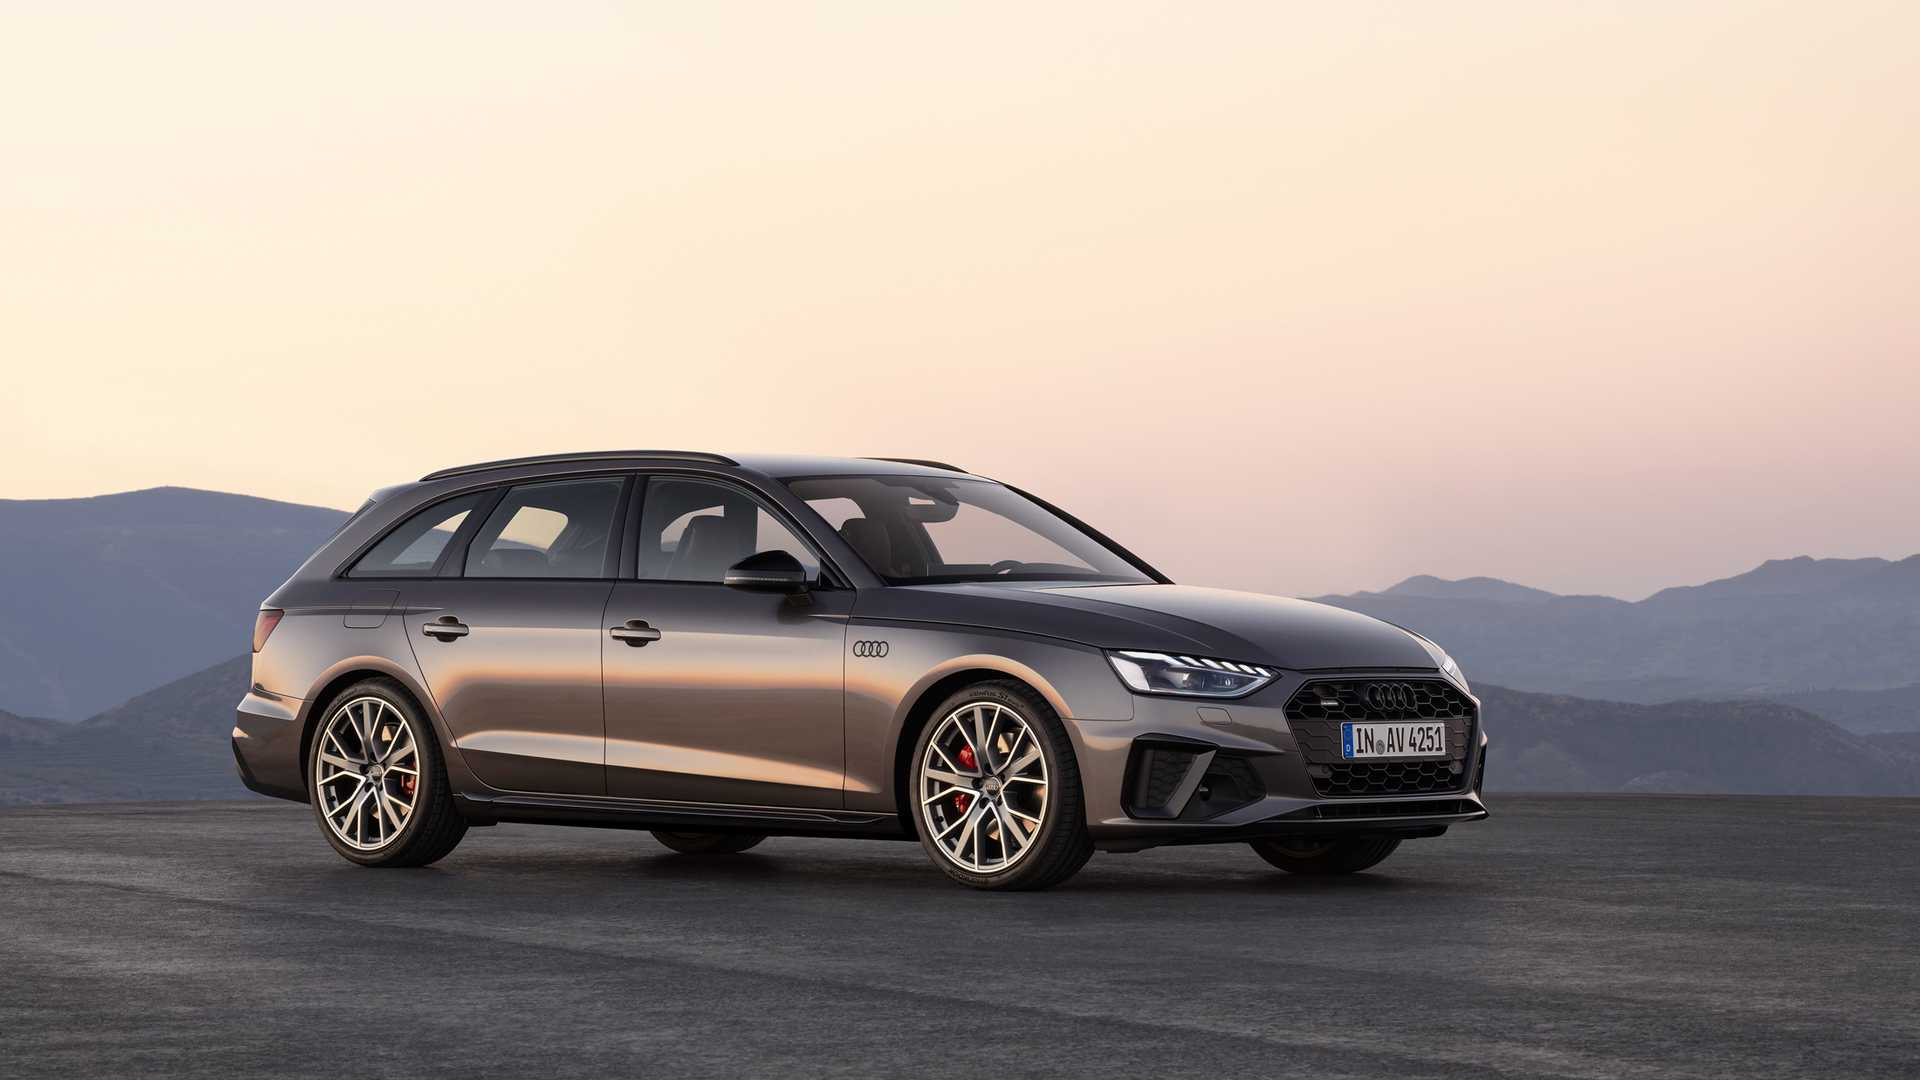 2020 Audi A4 Avant (Color: Terra Gray) Front Three-Quarter Wallpapers (2)